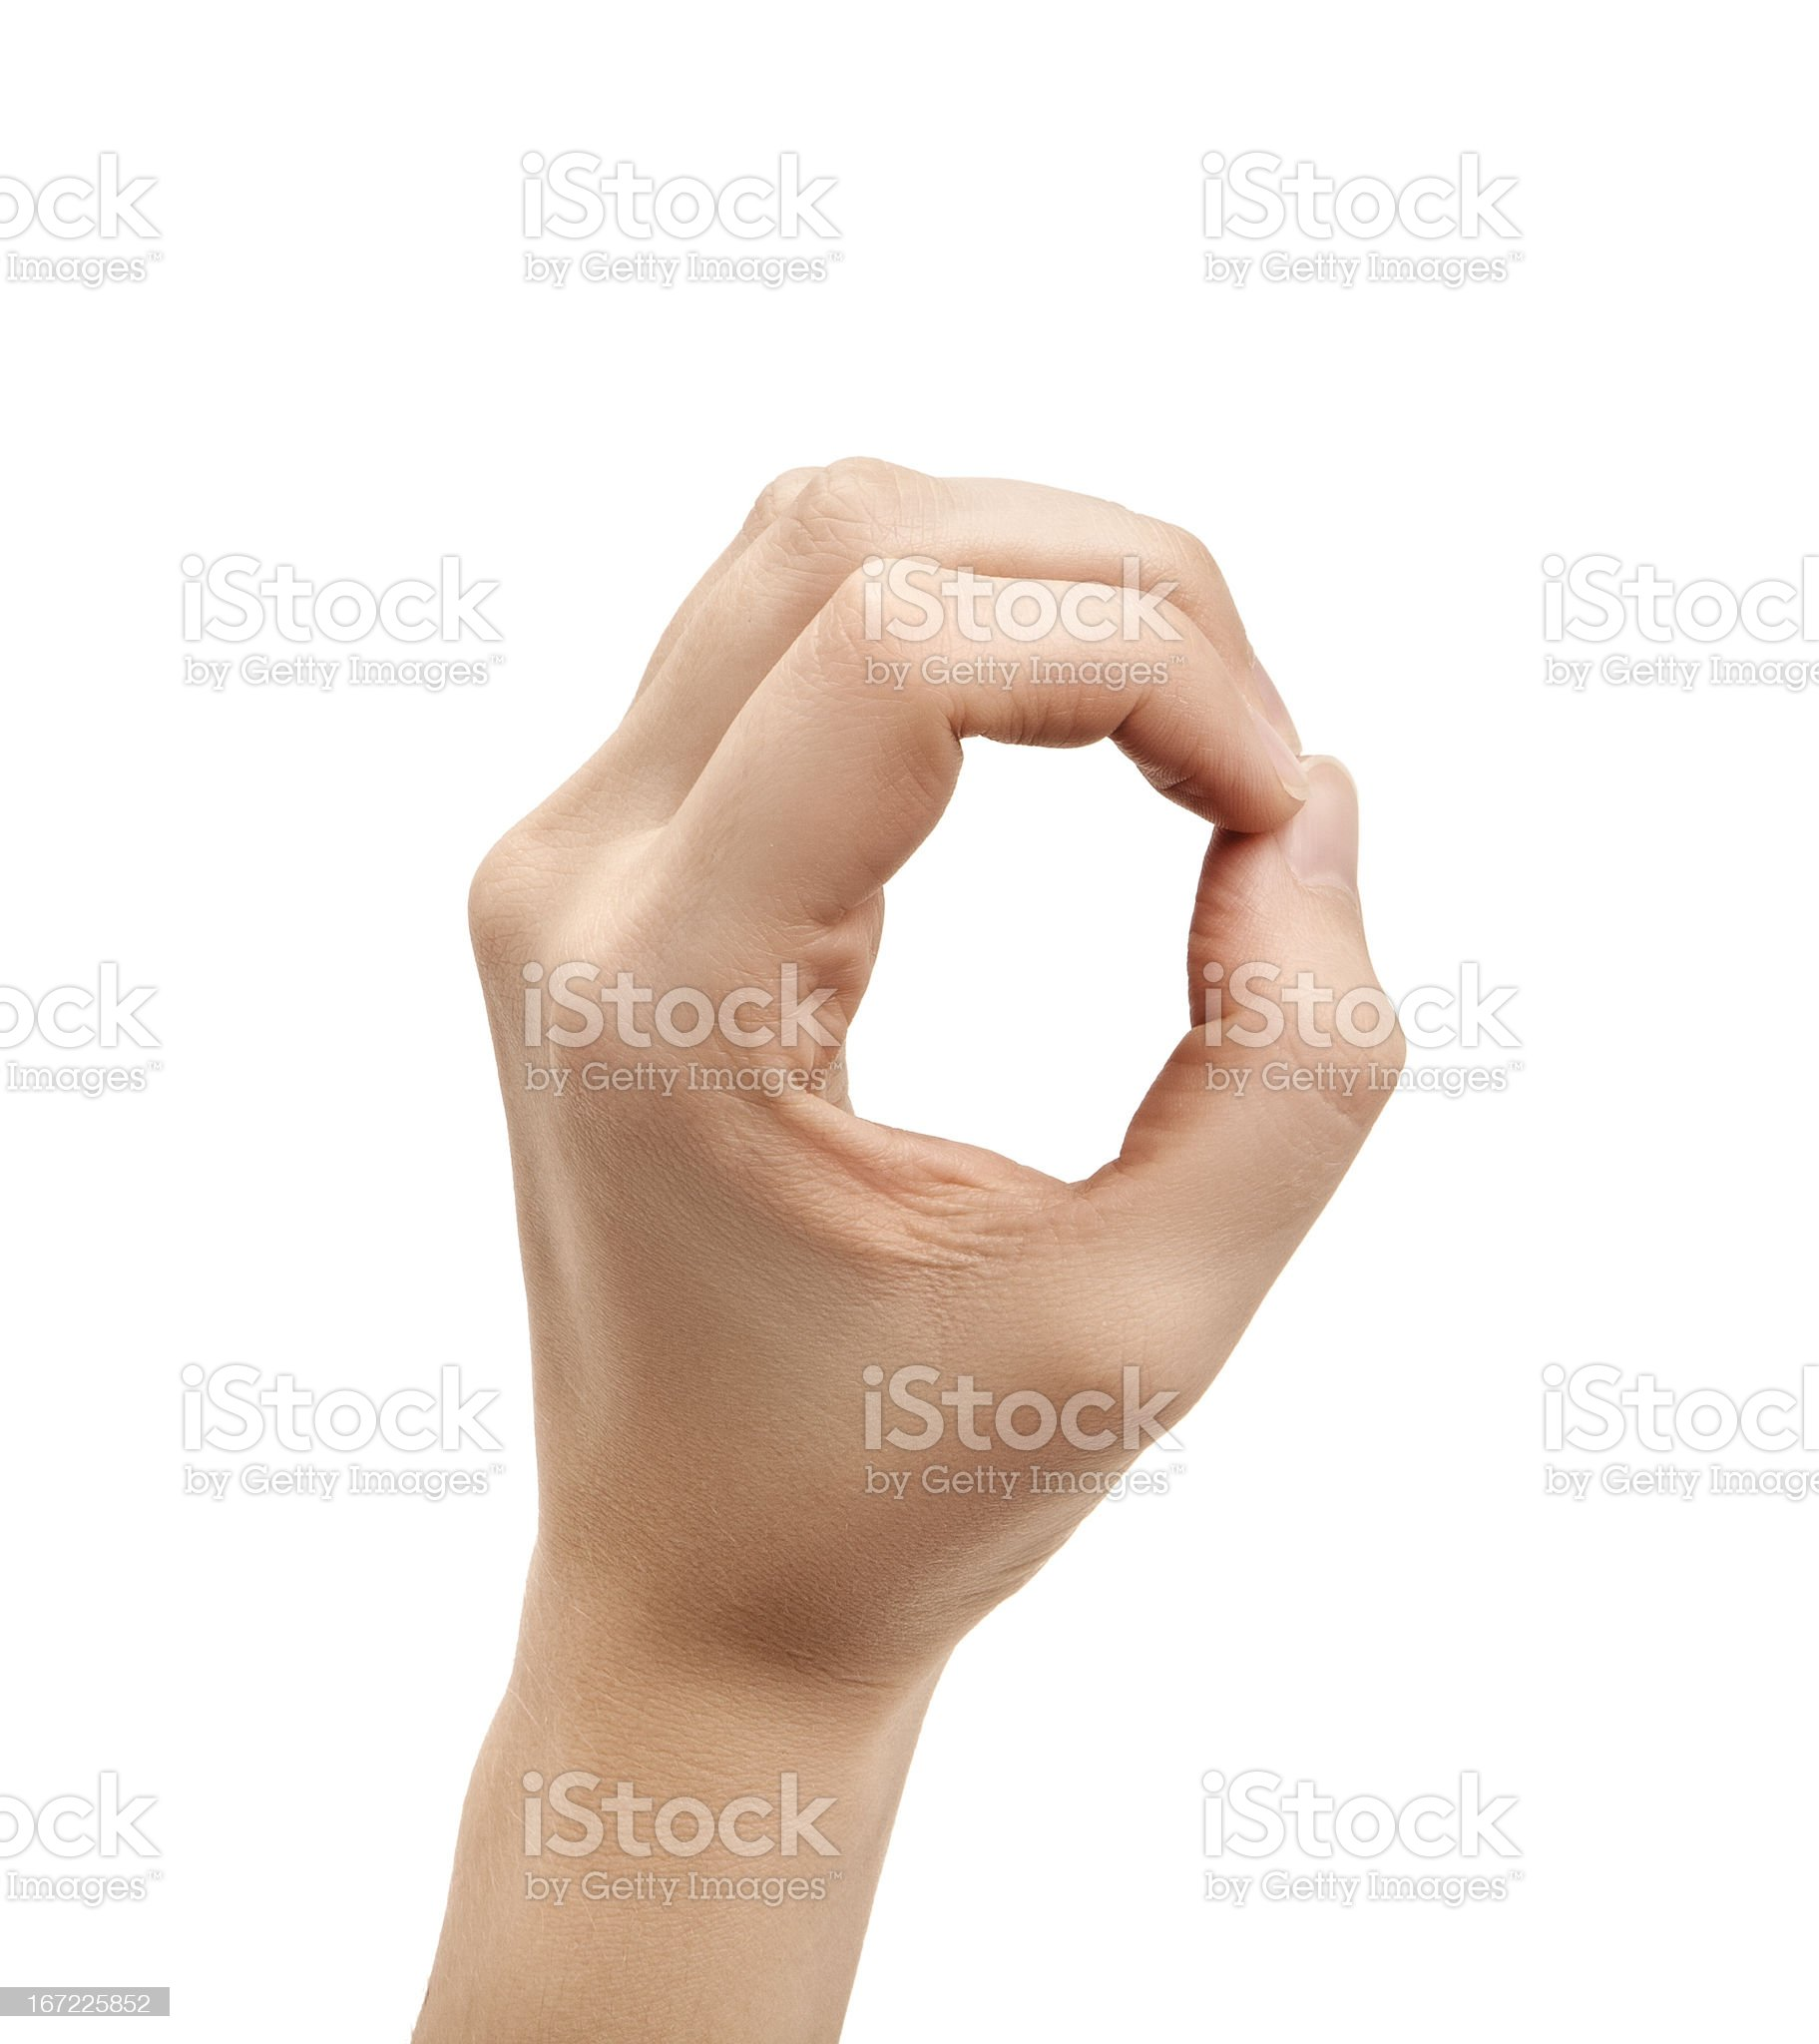 The letter O using American Sign Language royalty-free stock photo